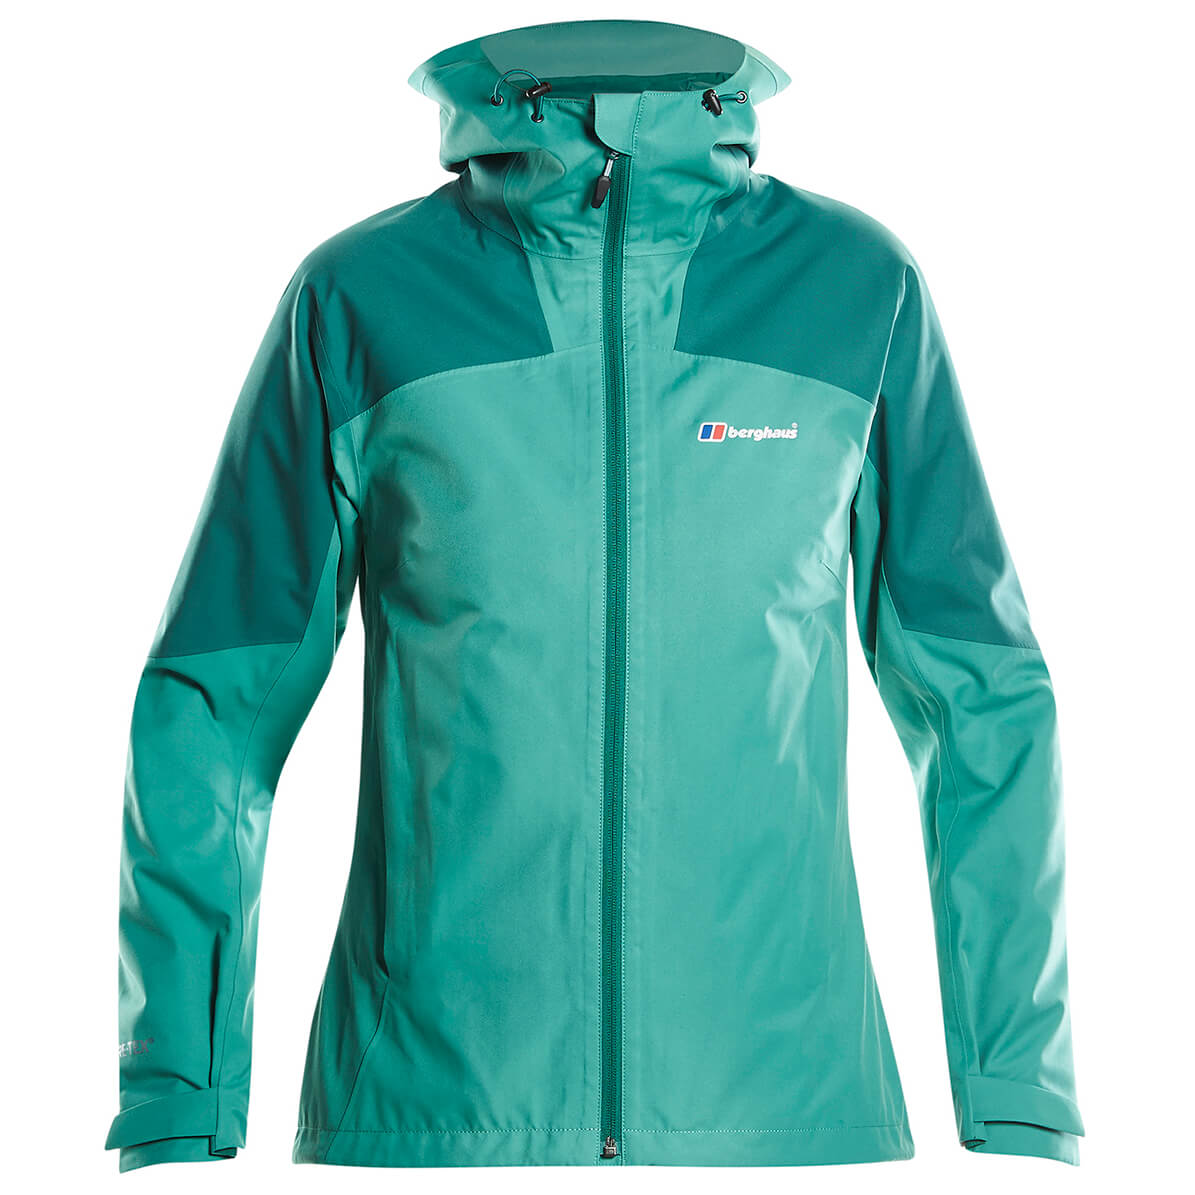 Berghaus Womens Fellmaster Interactive Waterproof Shell Jacket